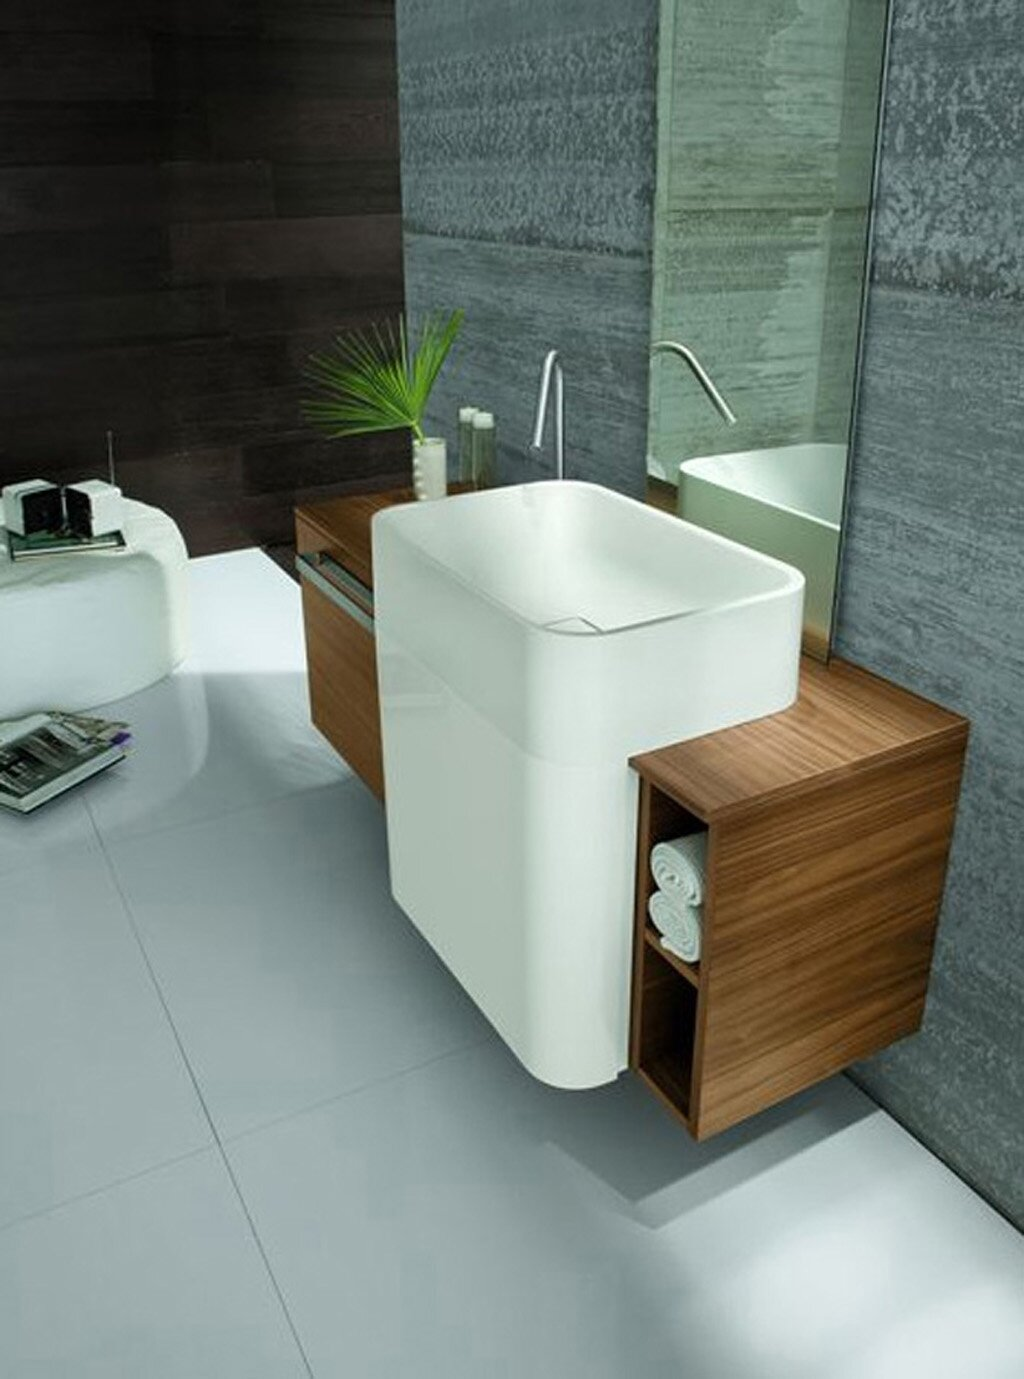 Top 15 bathroom sink designs and models mostbeautifulthings for Latest bathroom sink designs